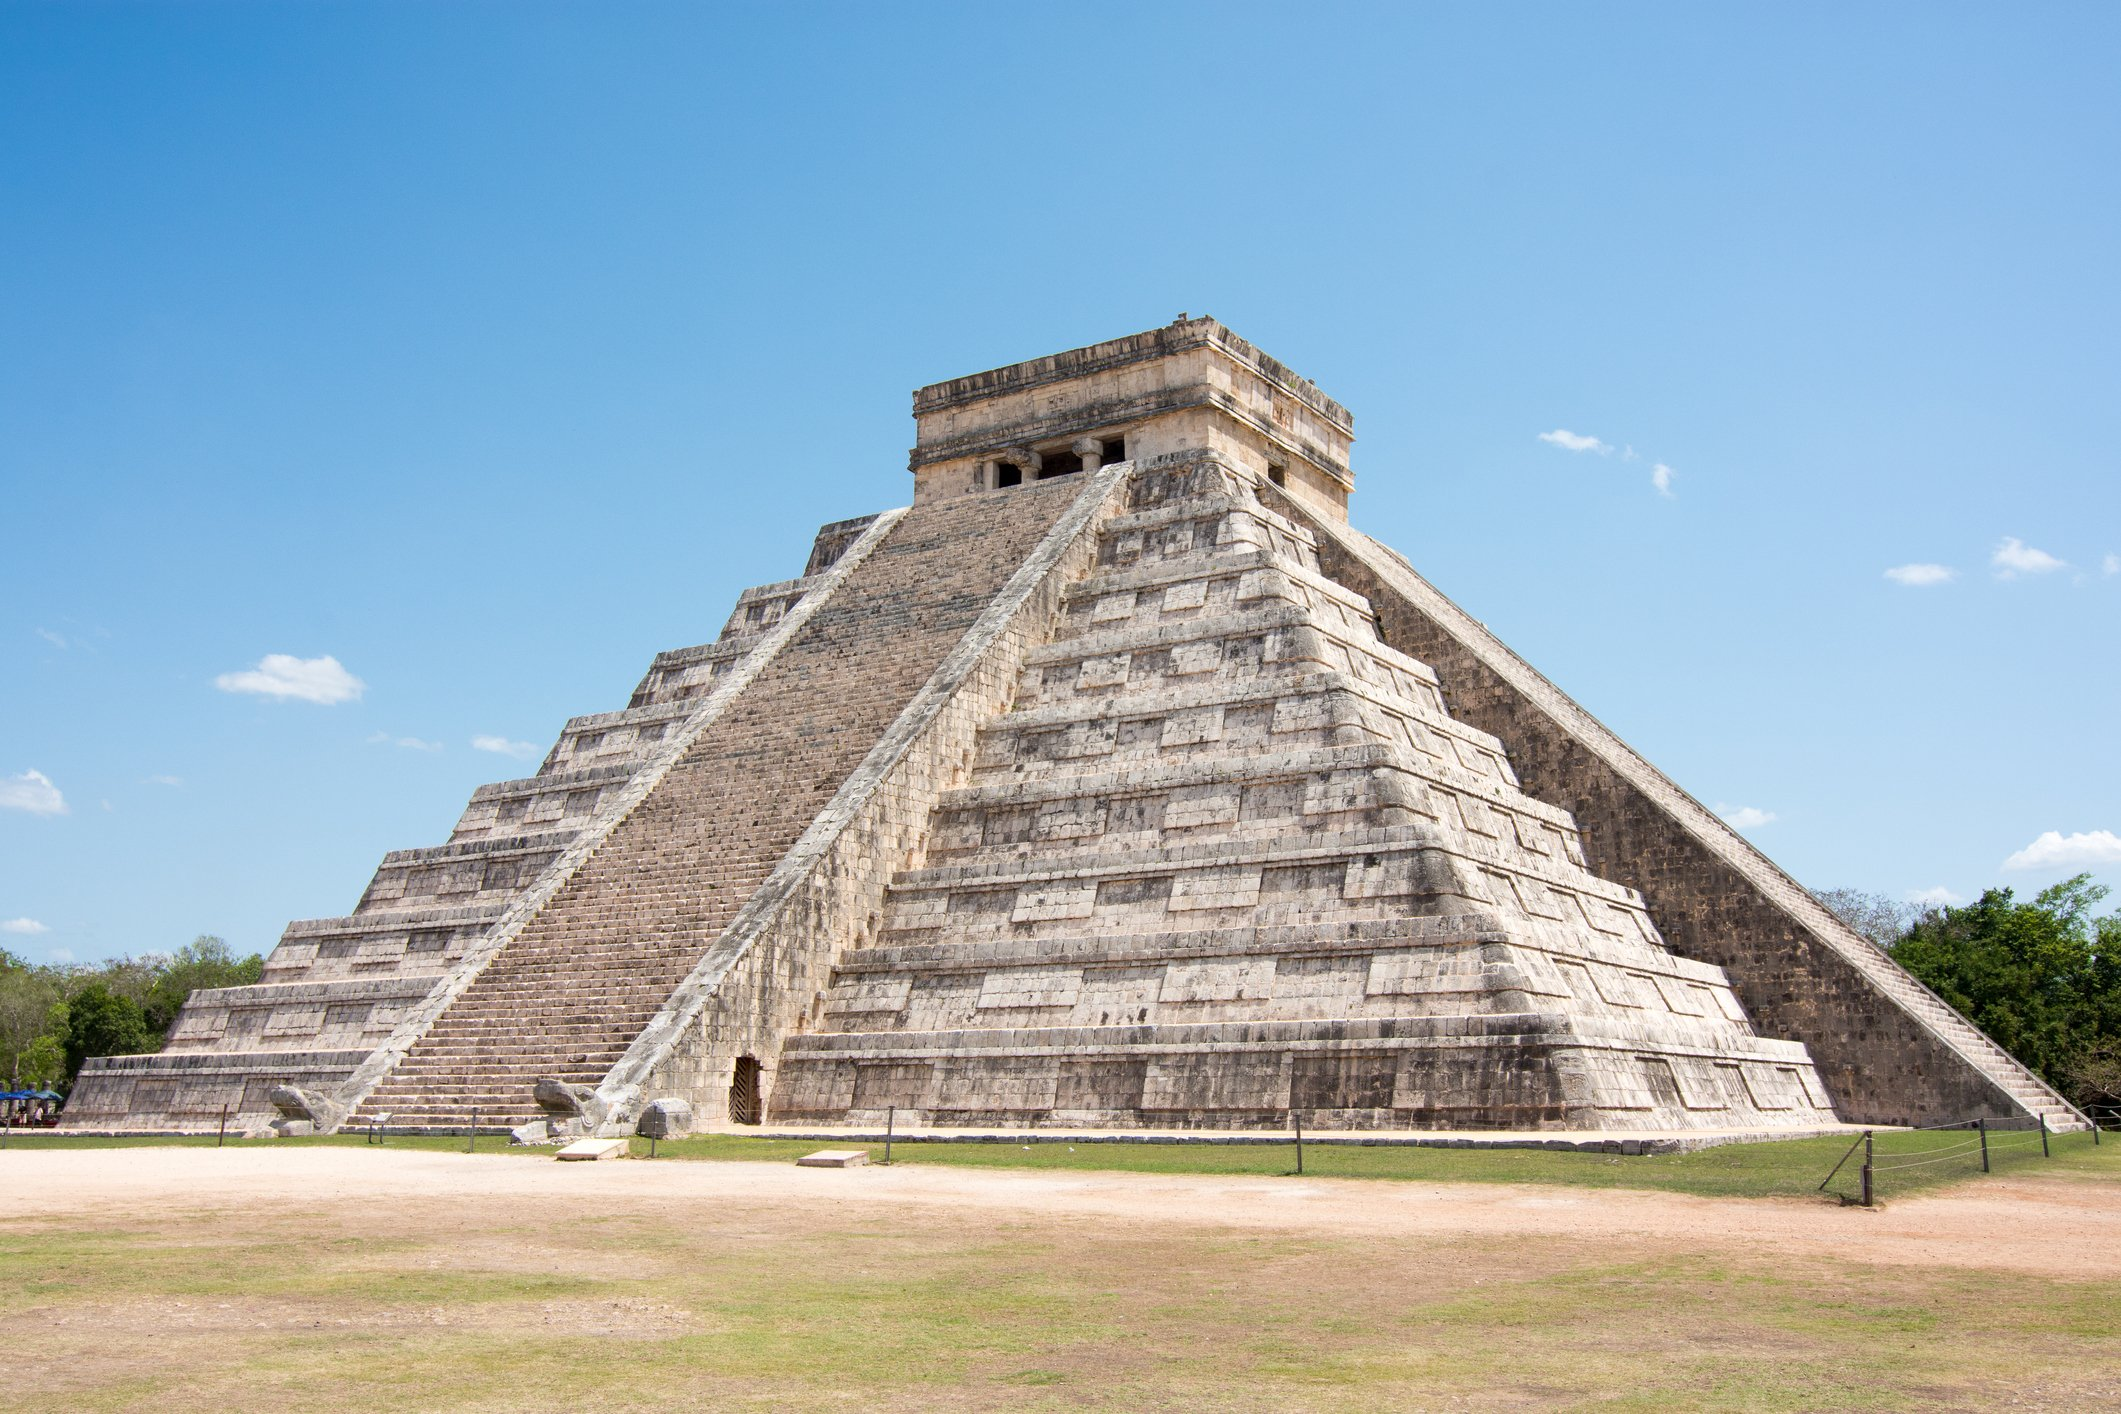 Slide 5 of 8: Though most people may associate pyramids with Egypt, there are some spectacular structures in Mexico as well. One example of that is the Pyramid of Chichen Itza, which is about a two-and-a-half-hour drive from Cancún. Chichen Itza was the ancient capital of the Yucatán Maya, and as a result, it is home to an array of impressive structures, including this pyramid. Built between 800 and 900 CE, the Pyramid of Chichen Itza was designed to be aligned with the summer solstice. Over the course of five hours on the longest day of the year, a combination of light and shadows creates seven triangles on the side of the staircase. And for 45 minutes, it appears as though a serpent is crawling down the side of the temple. The pyramid is dedicated to Kukulcan (or Quetzalcoatl), the feathered serpent god, and according to legend, it was designed so that it appears as though the serpent visits the monument during the summer and winter solstice. Ponder these ancient mysteries researchers still can't explain.